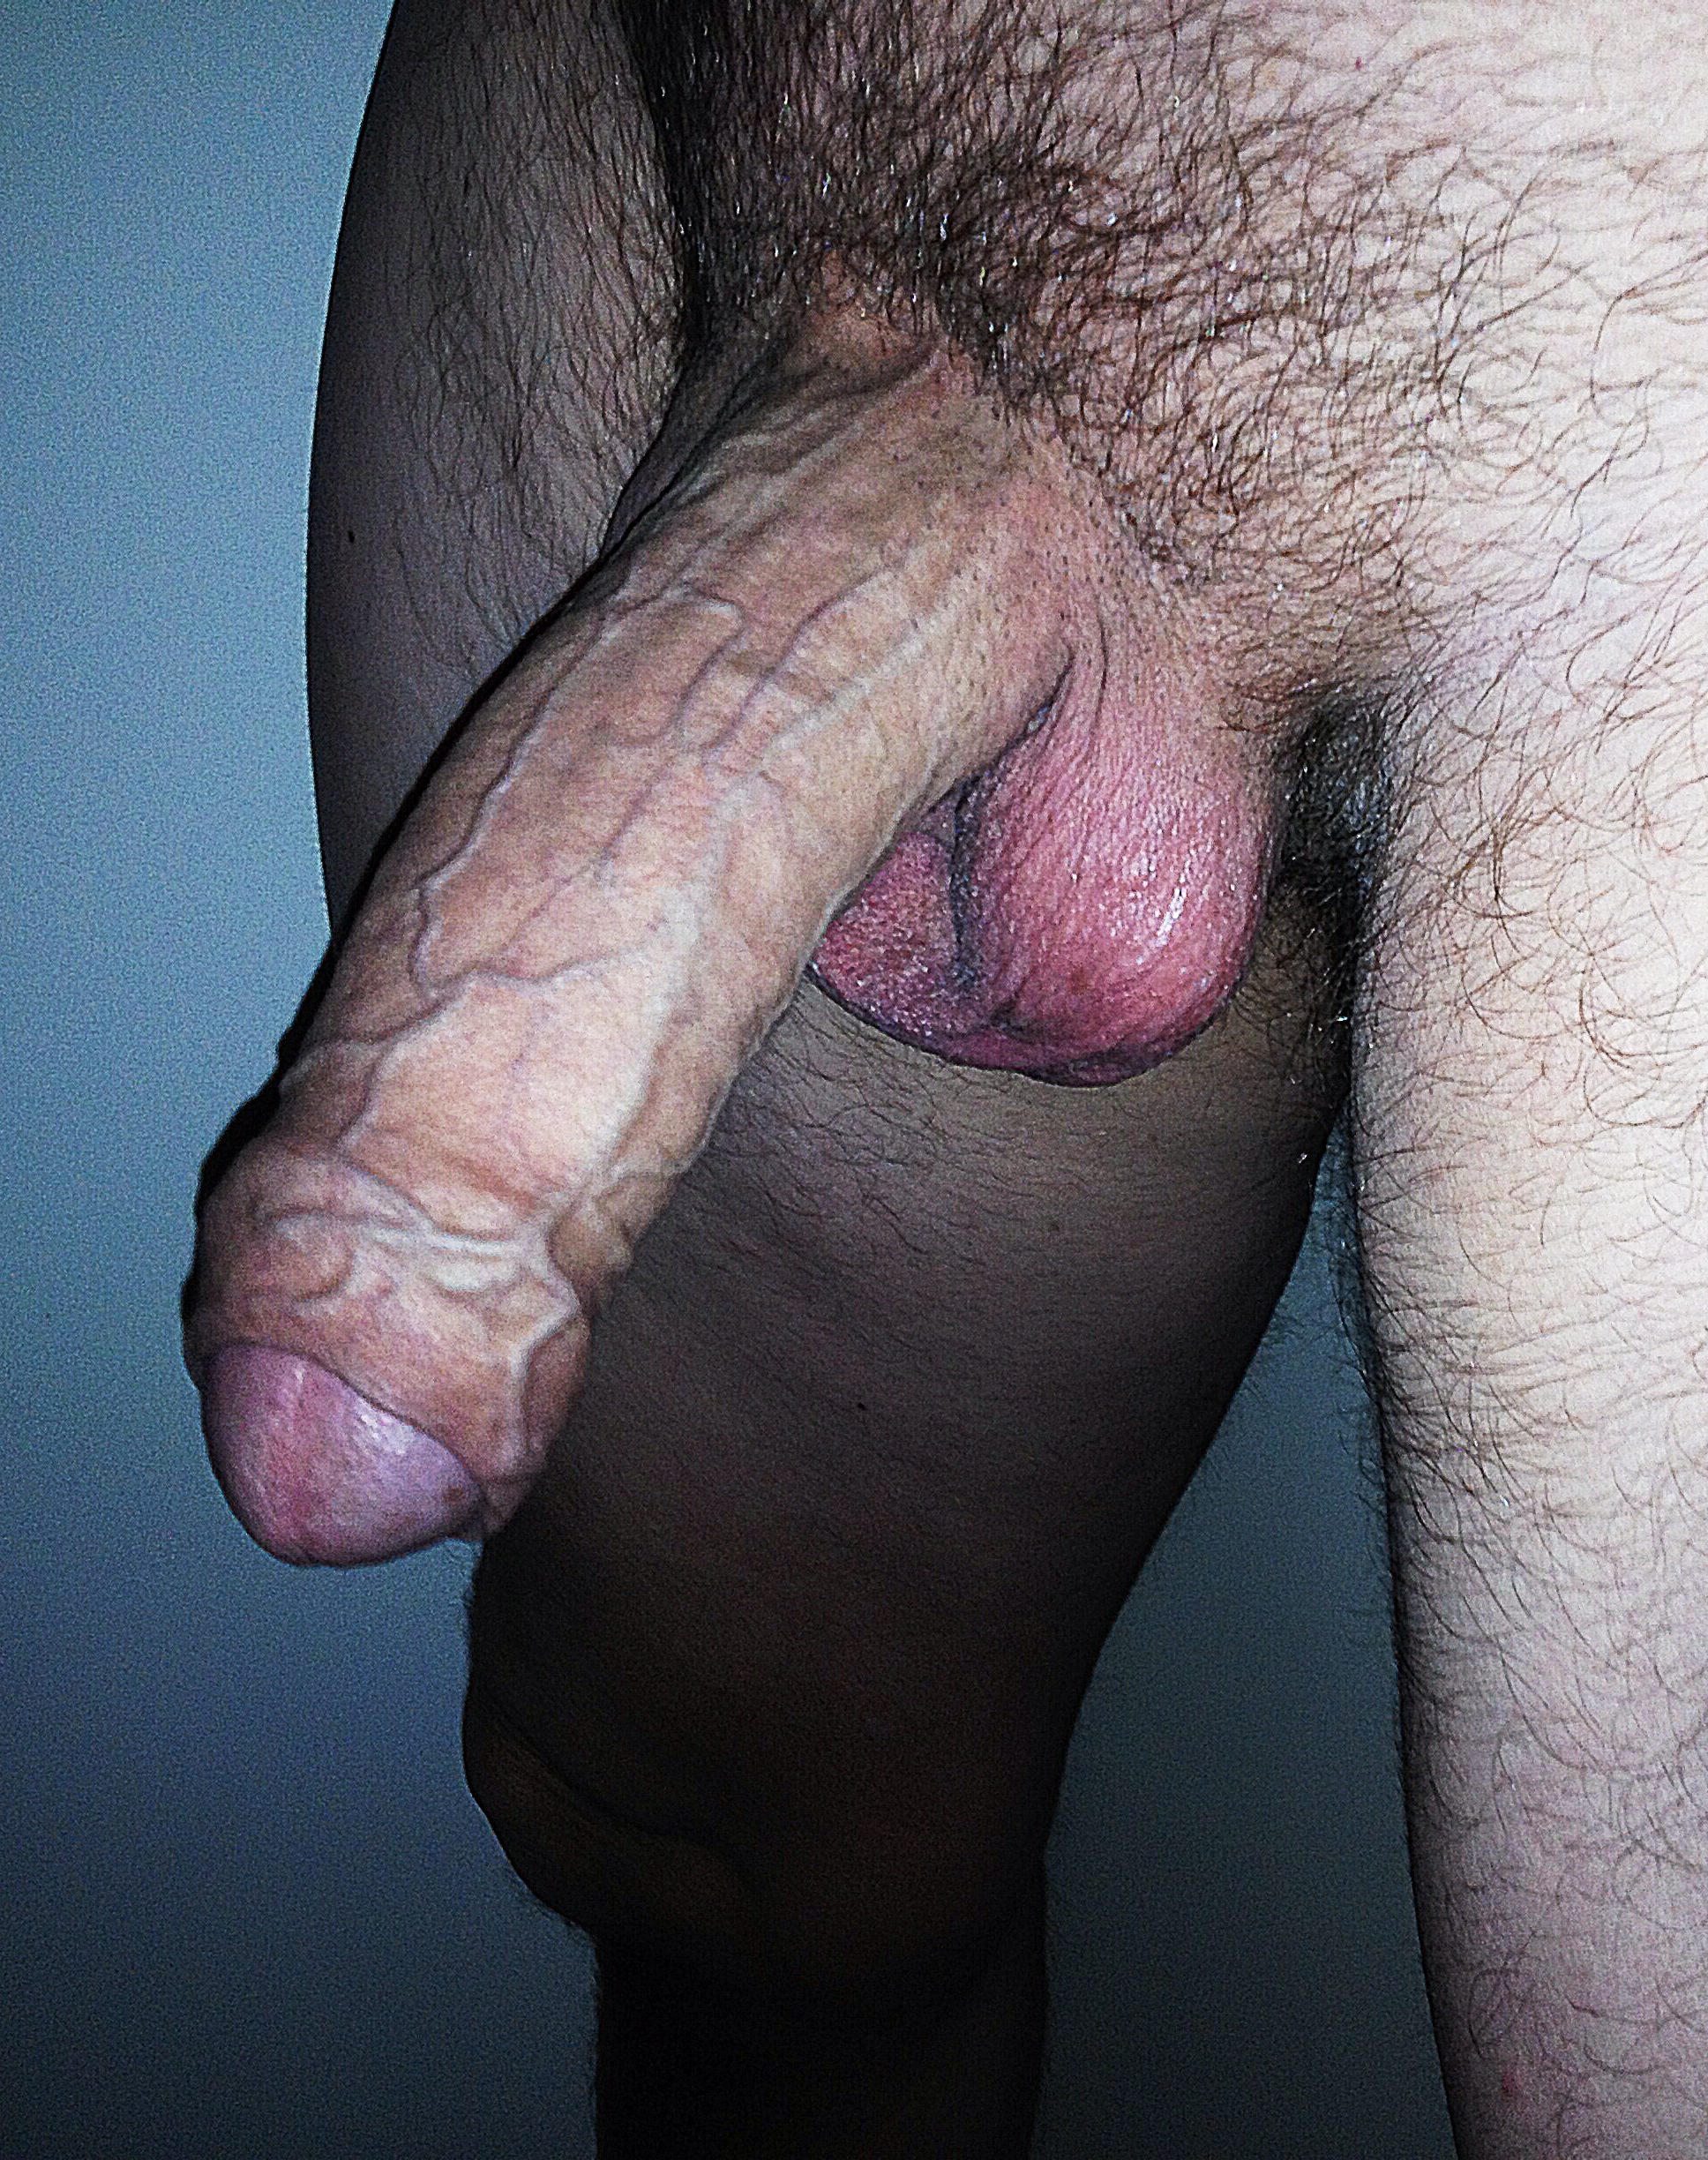 huge thick veiny cock - huge thick uncut veiny cock